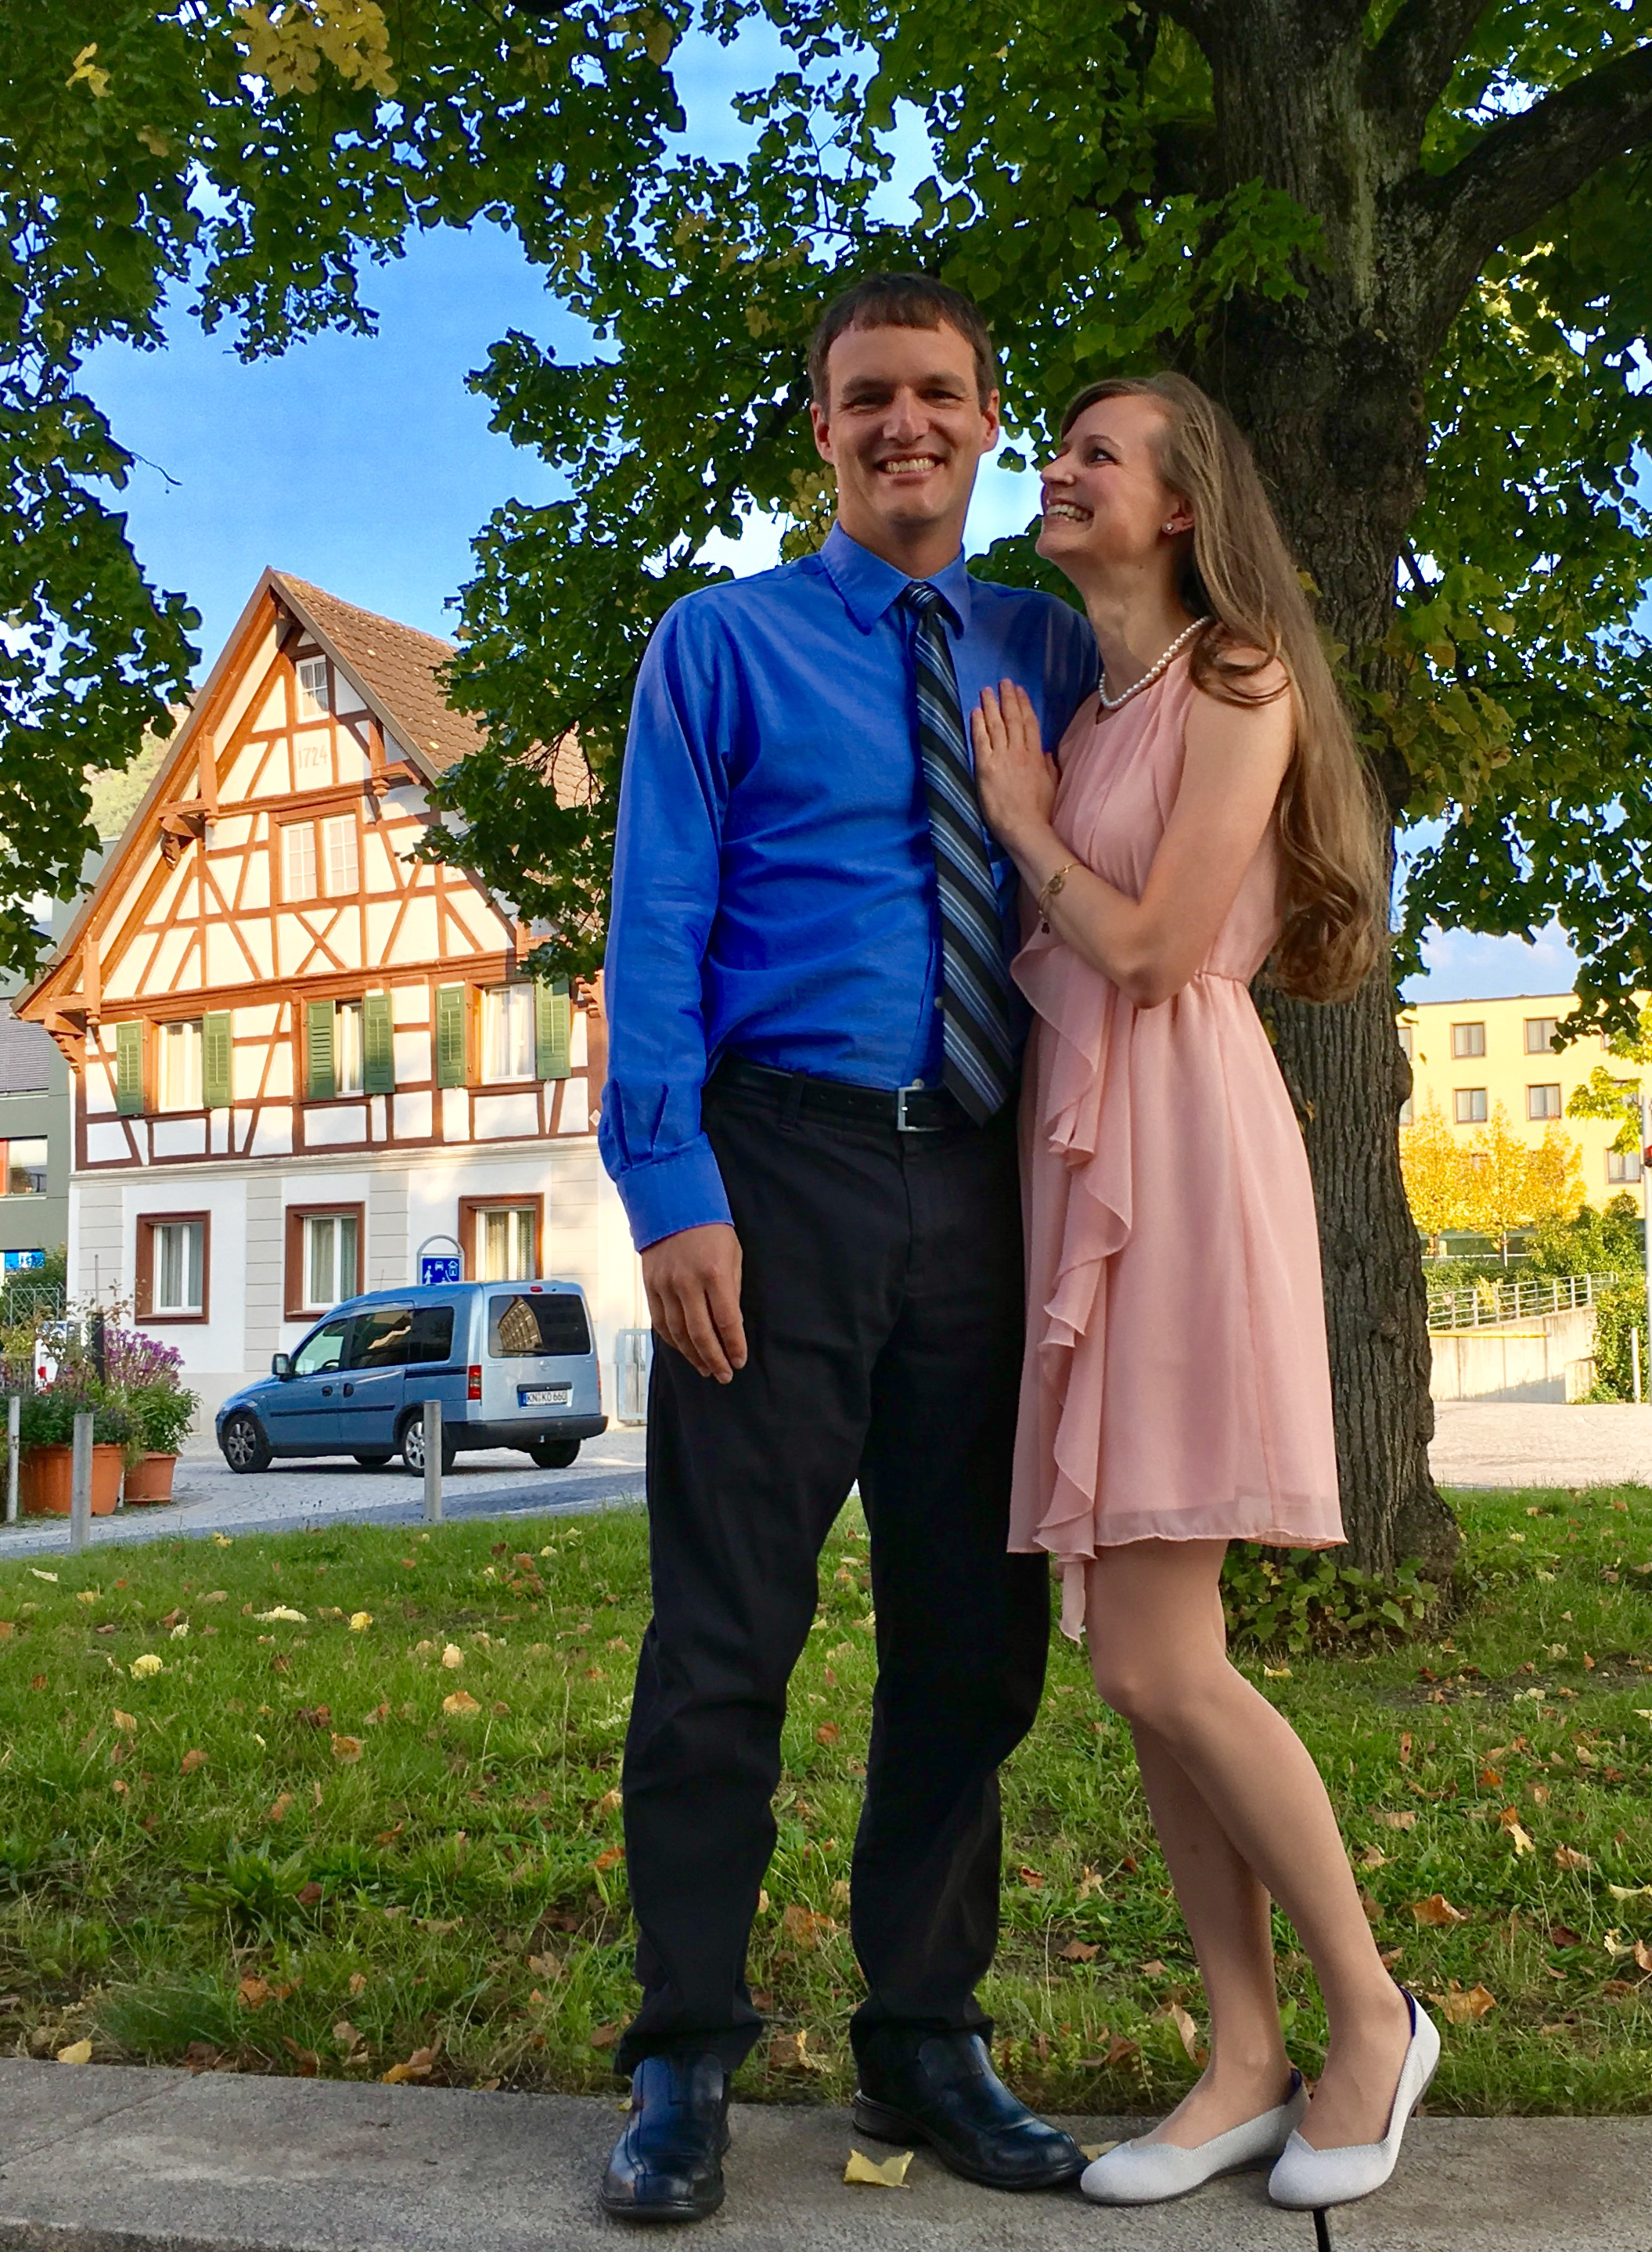 Brian & Sandra's Wedding in Germany, September 2017